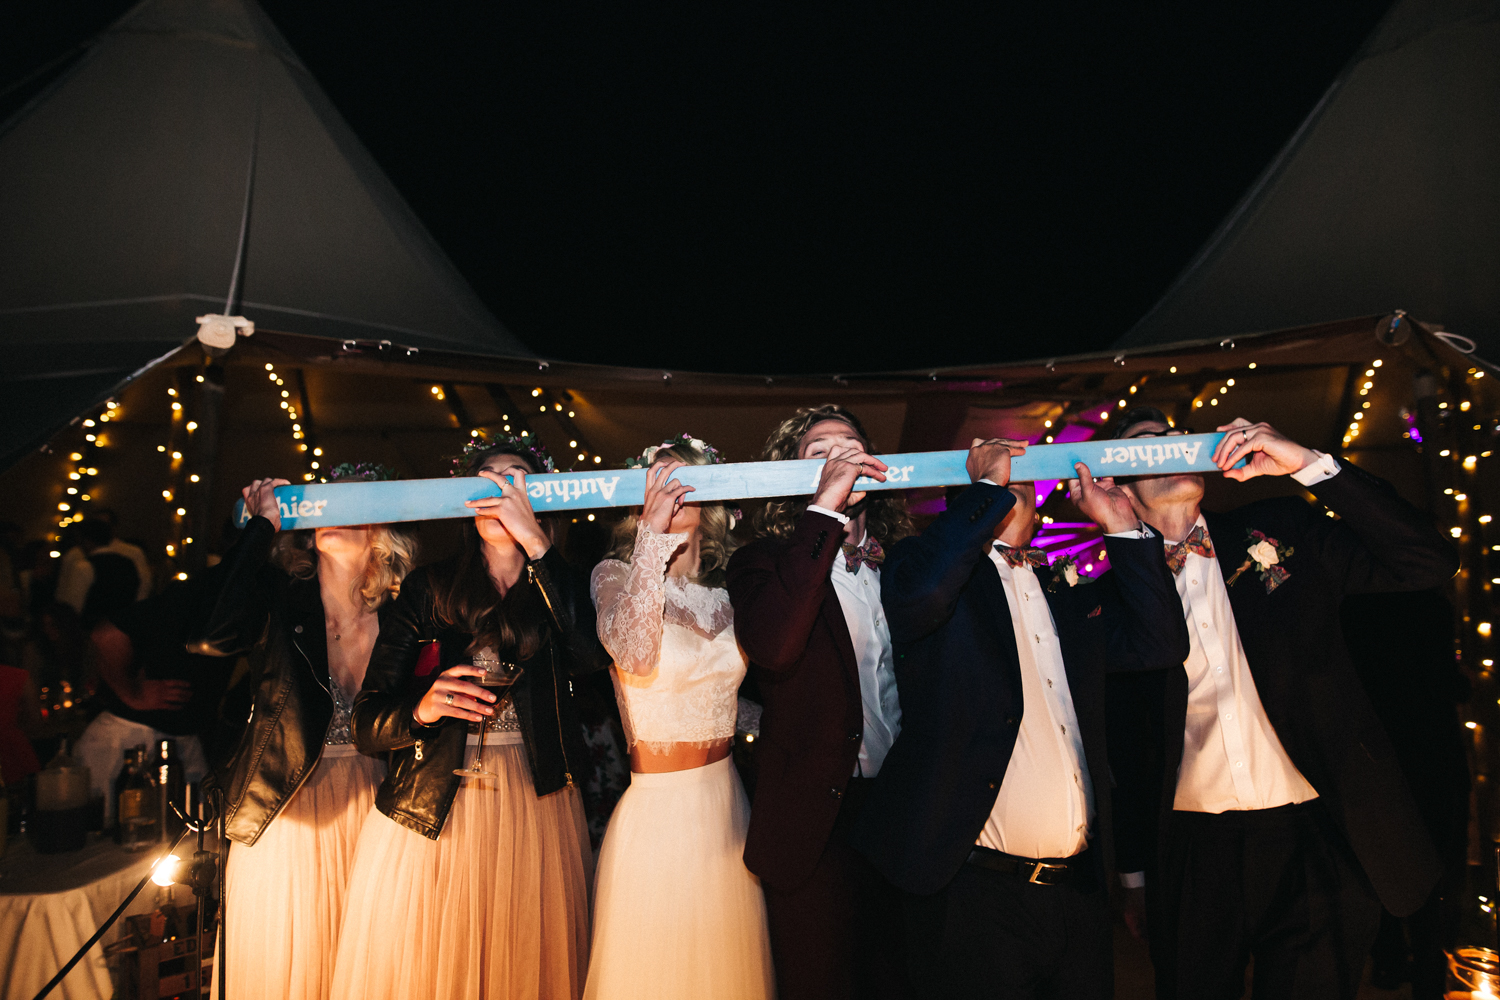 guests at a wedding use a shot-ski to do a line of shots at a wedding evening reception